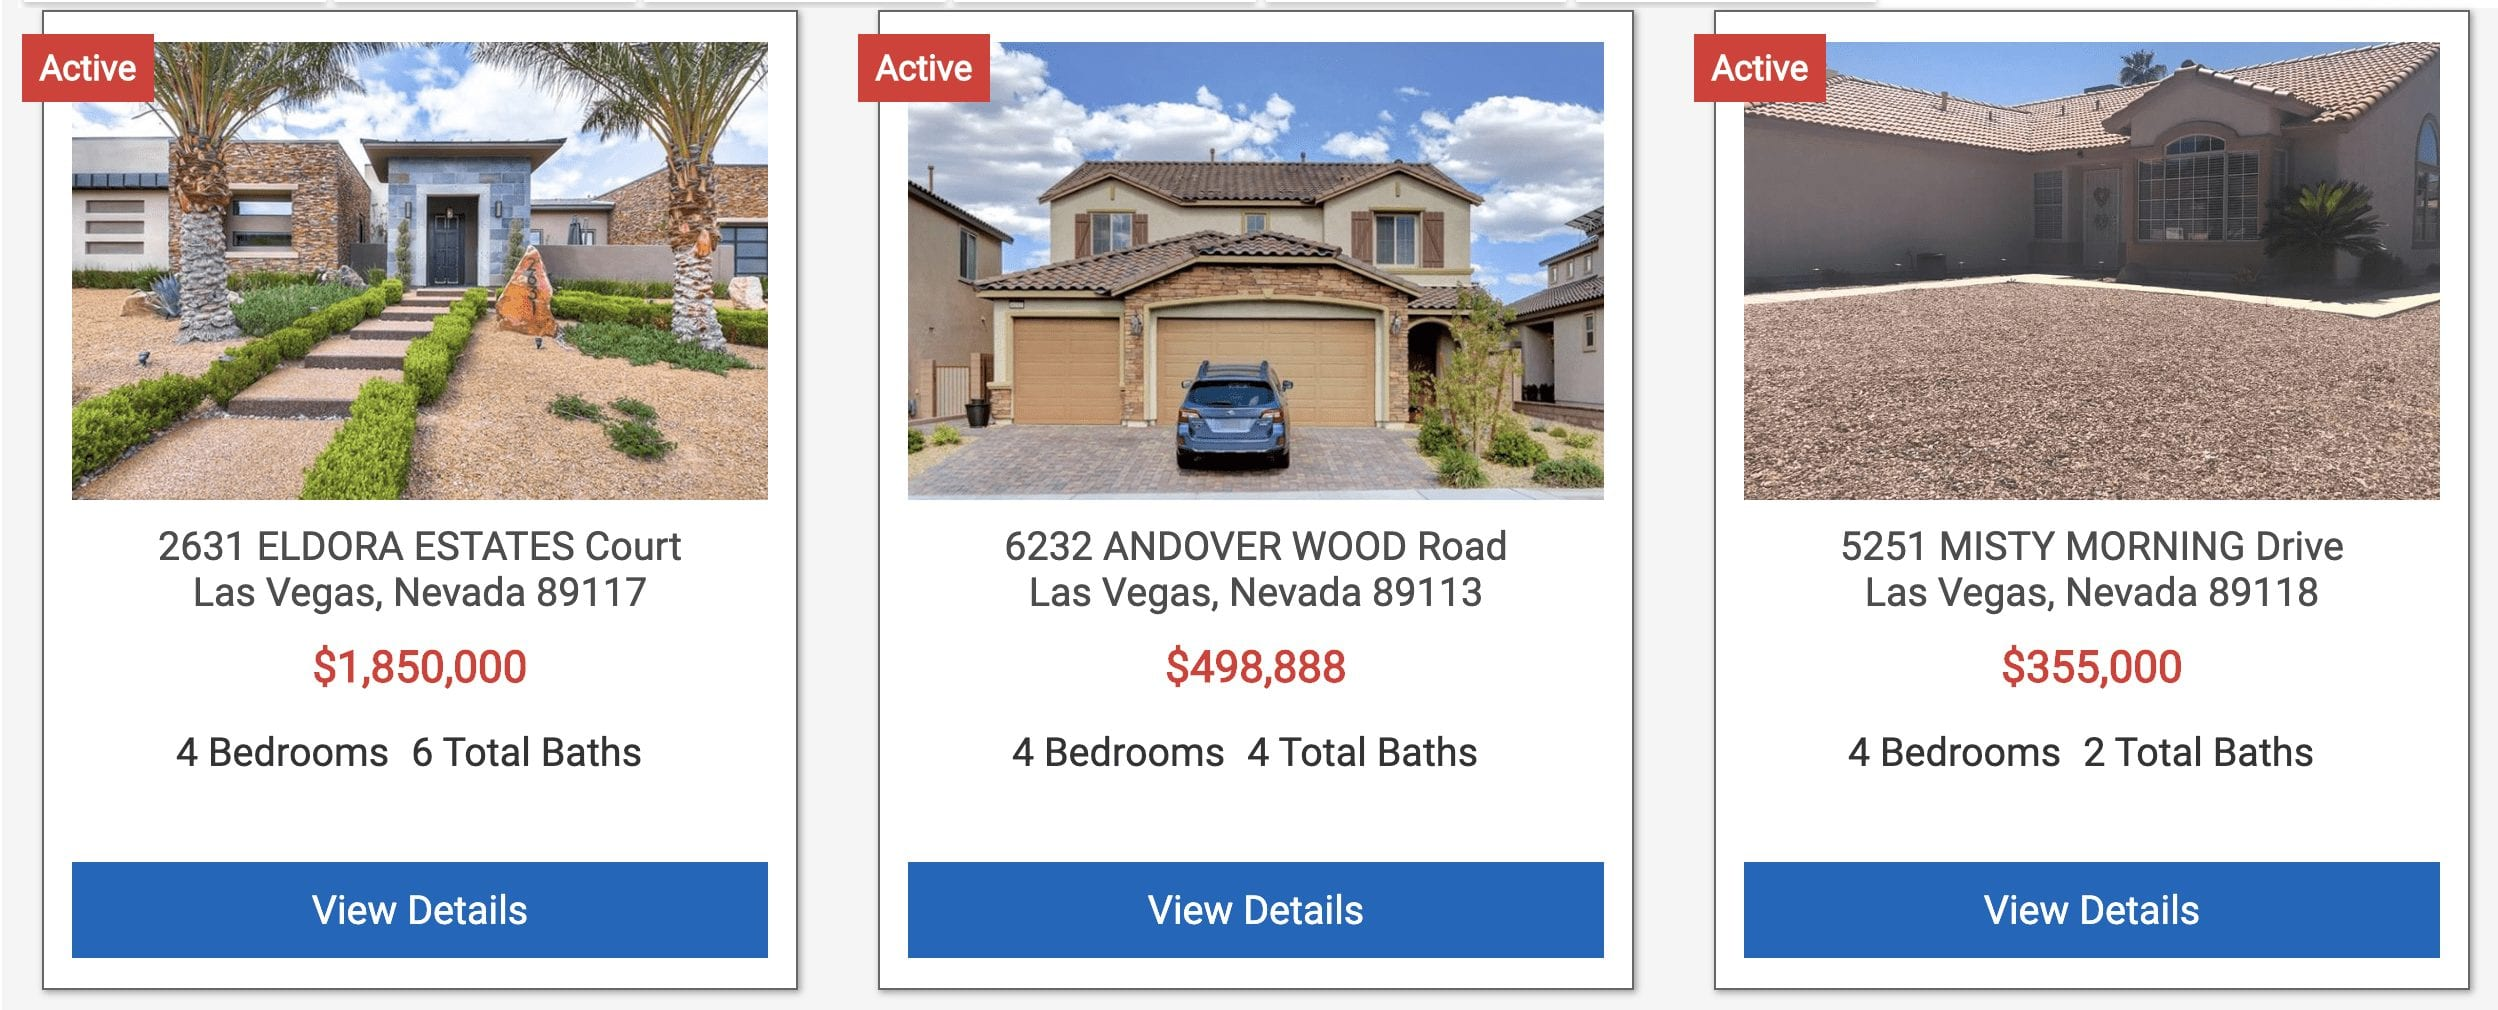 A strong IDX Website can convert both pay per click leads as well as organic leads that are generated by users searching on a search engine like Google.  You can hire a real estate builder or do it yourself on WordPress following the steps below.